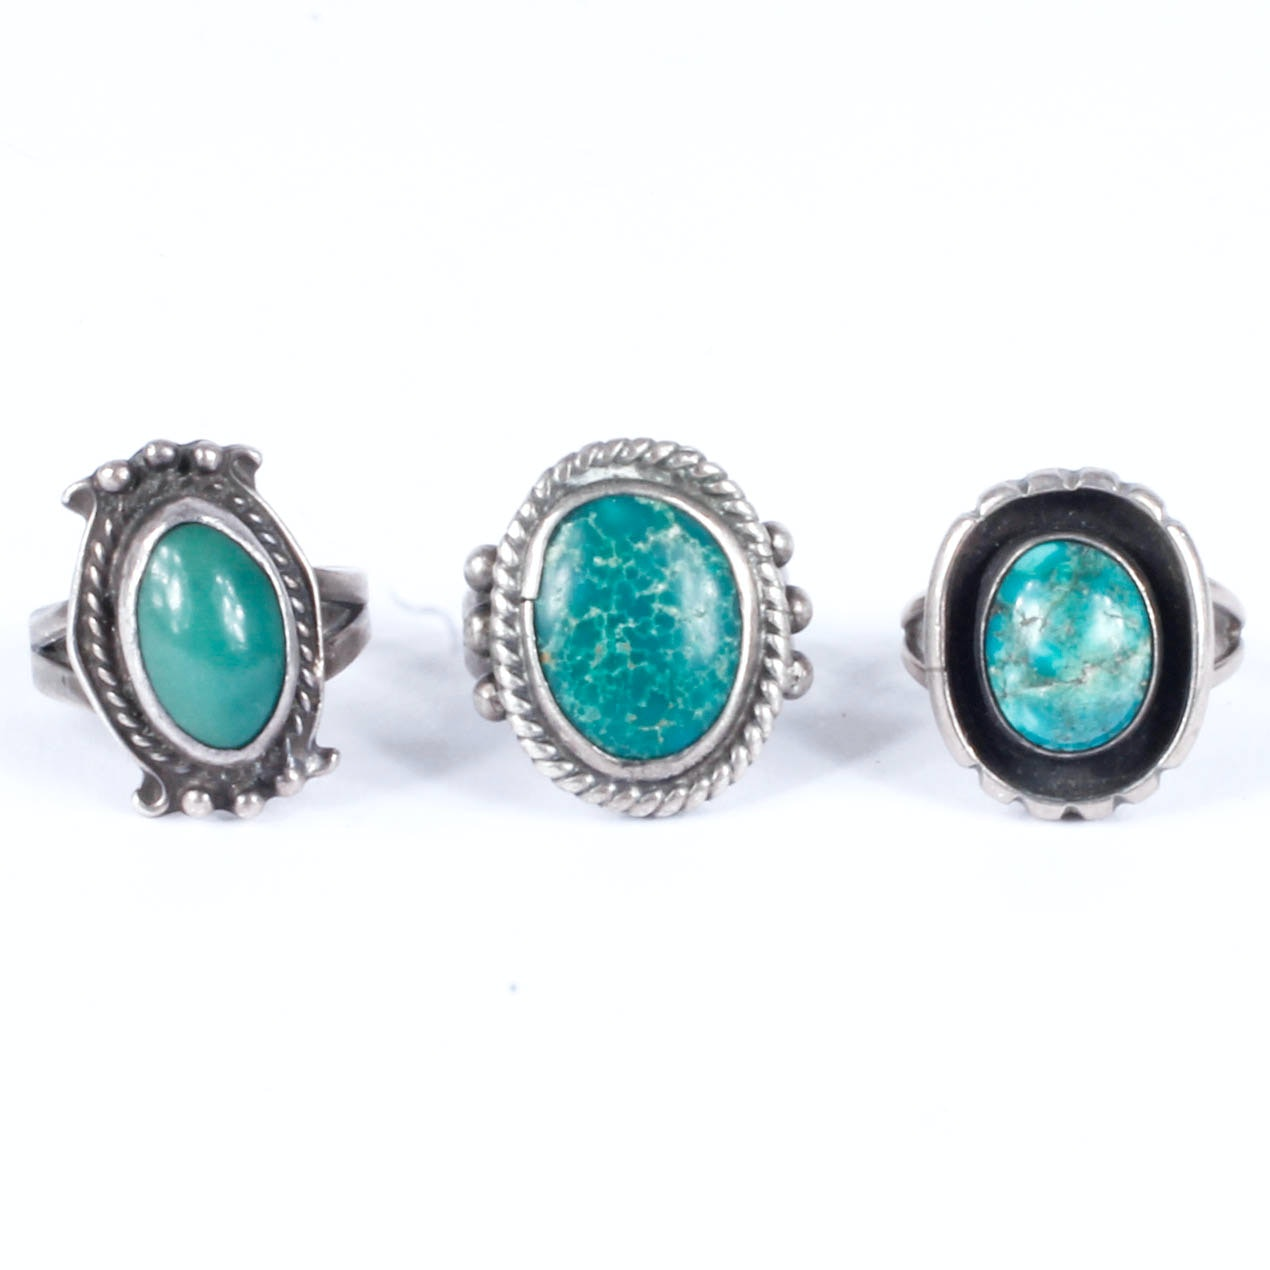 Silver Tone Rings with Green Stones